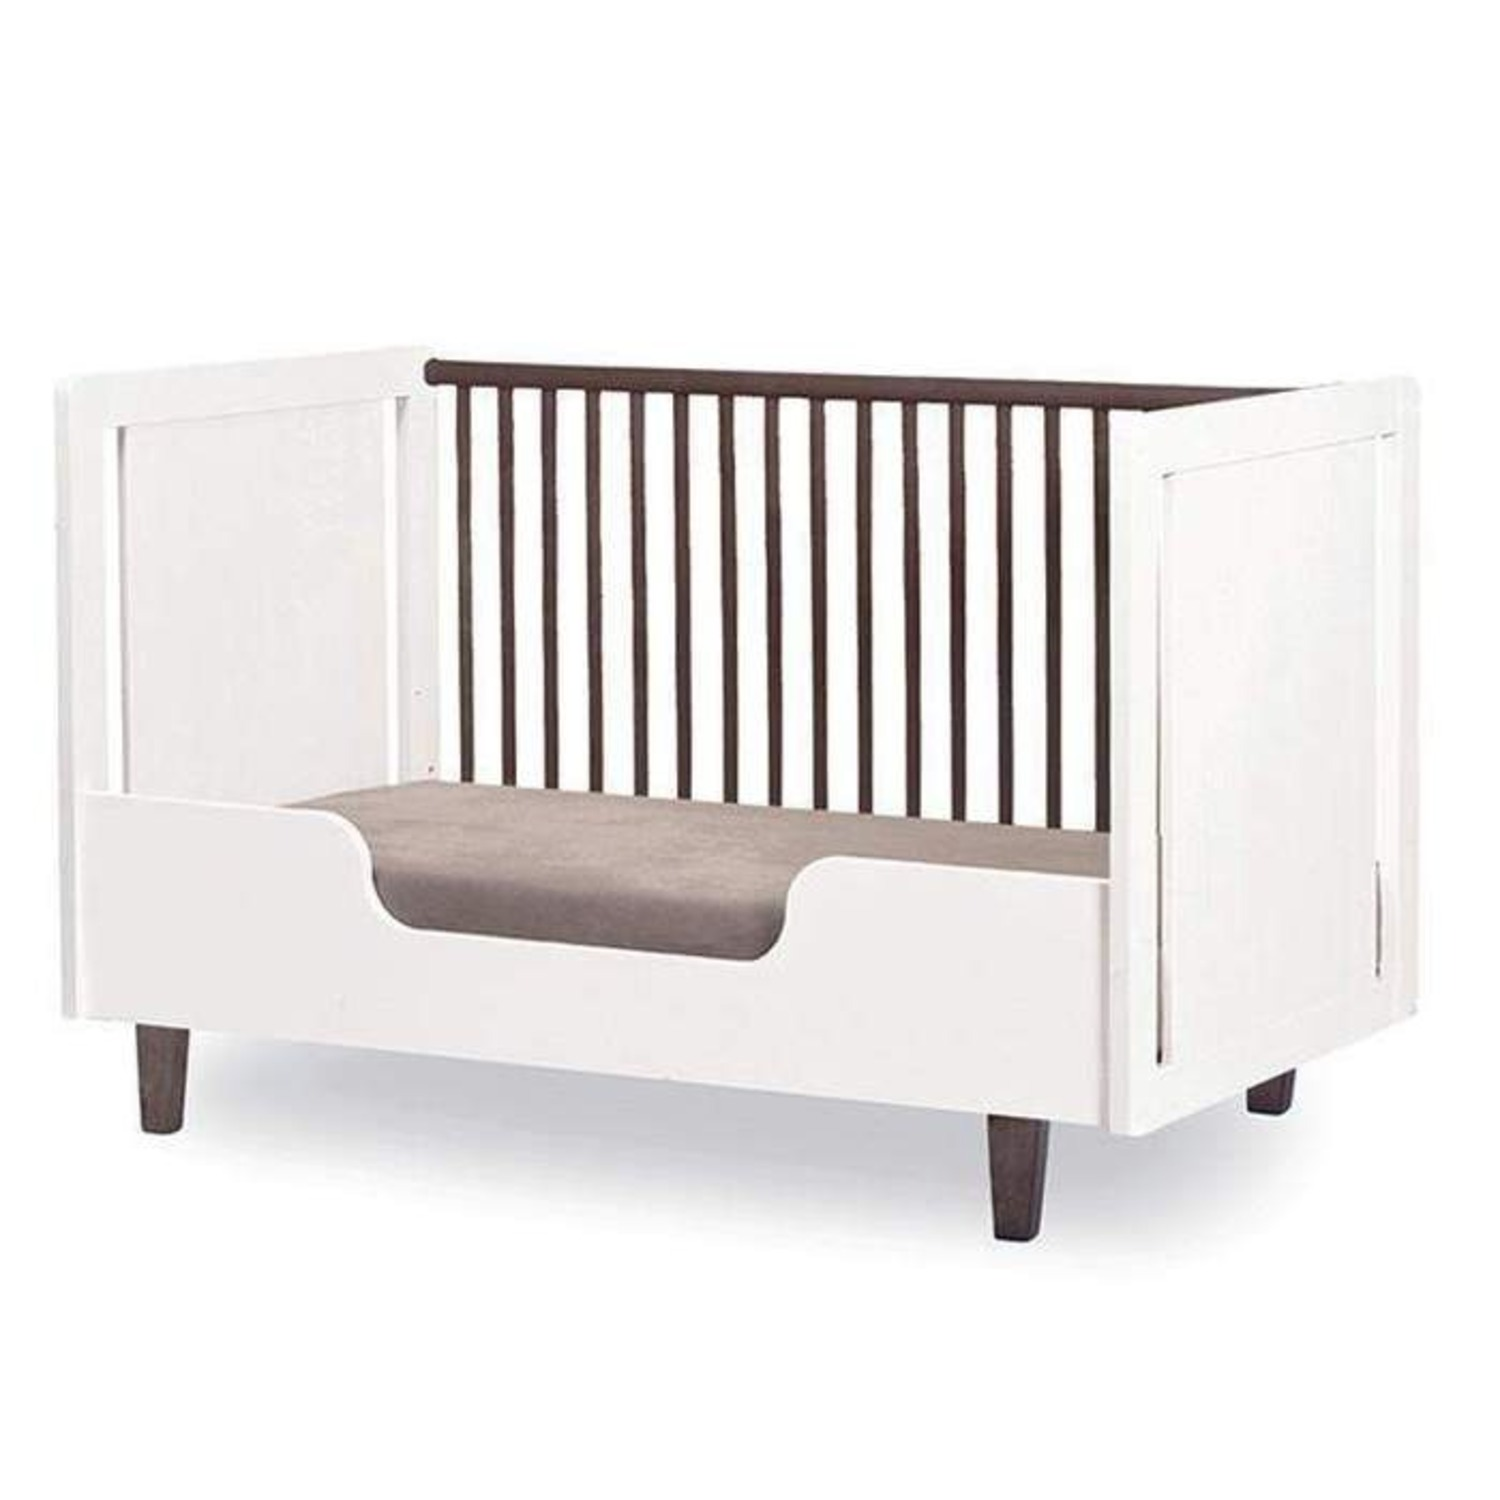 Oeuf Rhea Crib with Toddler Conversion - image-4